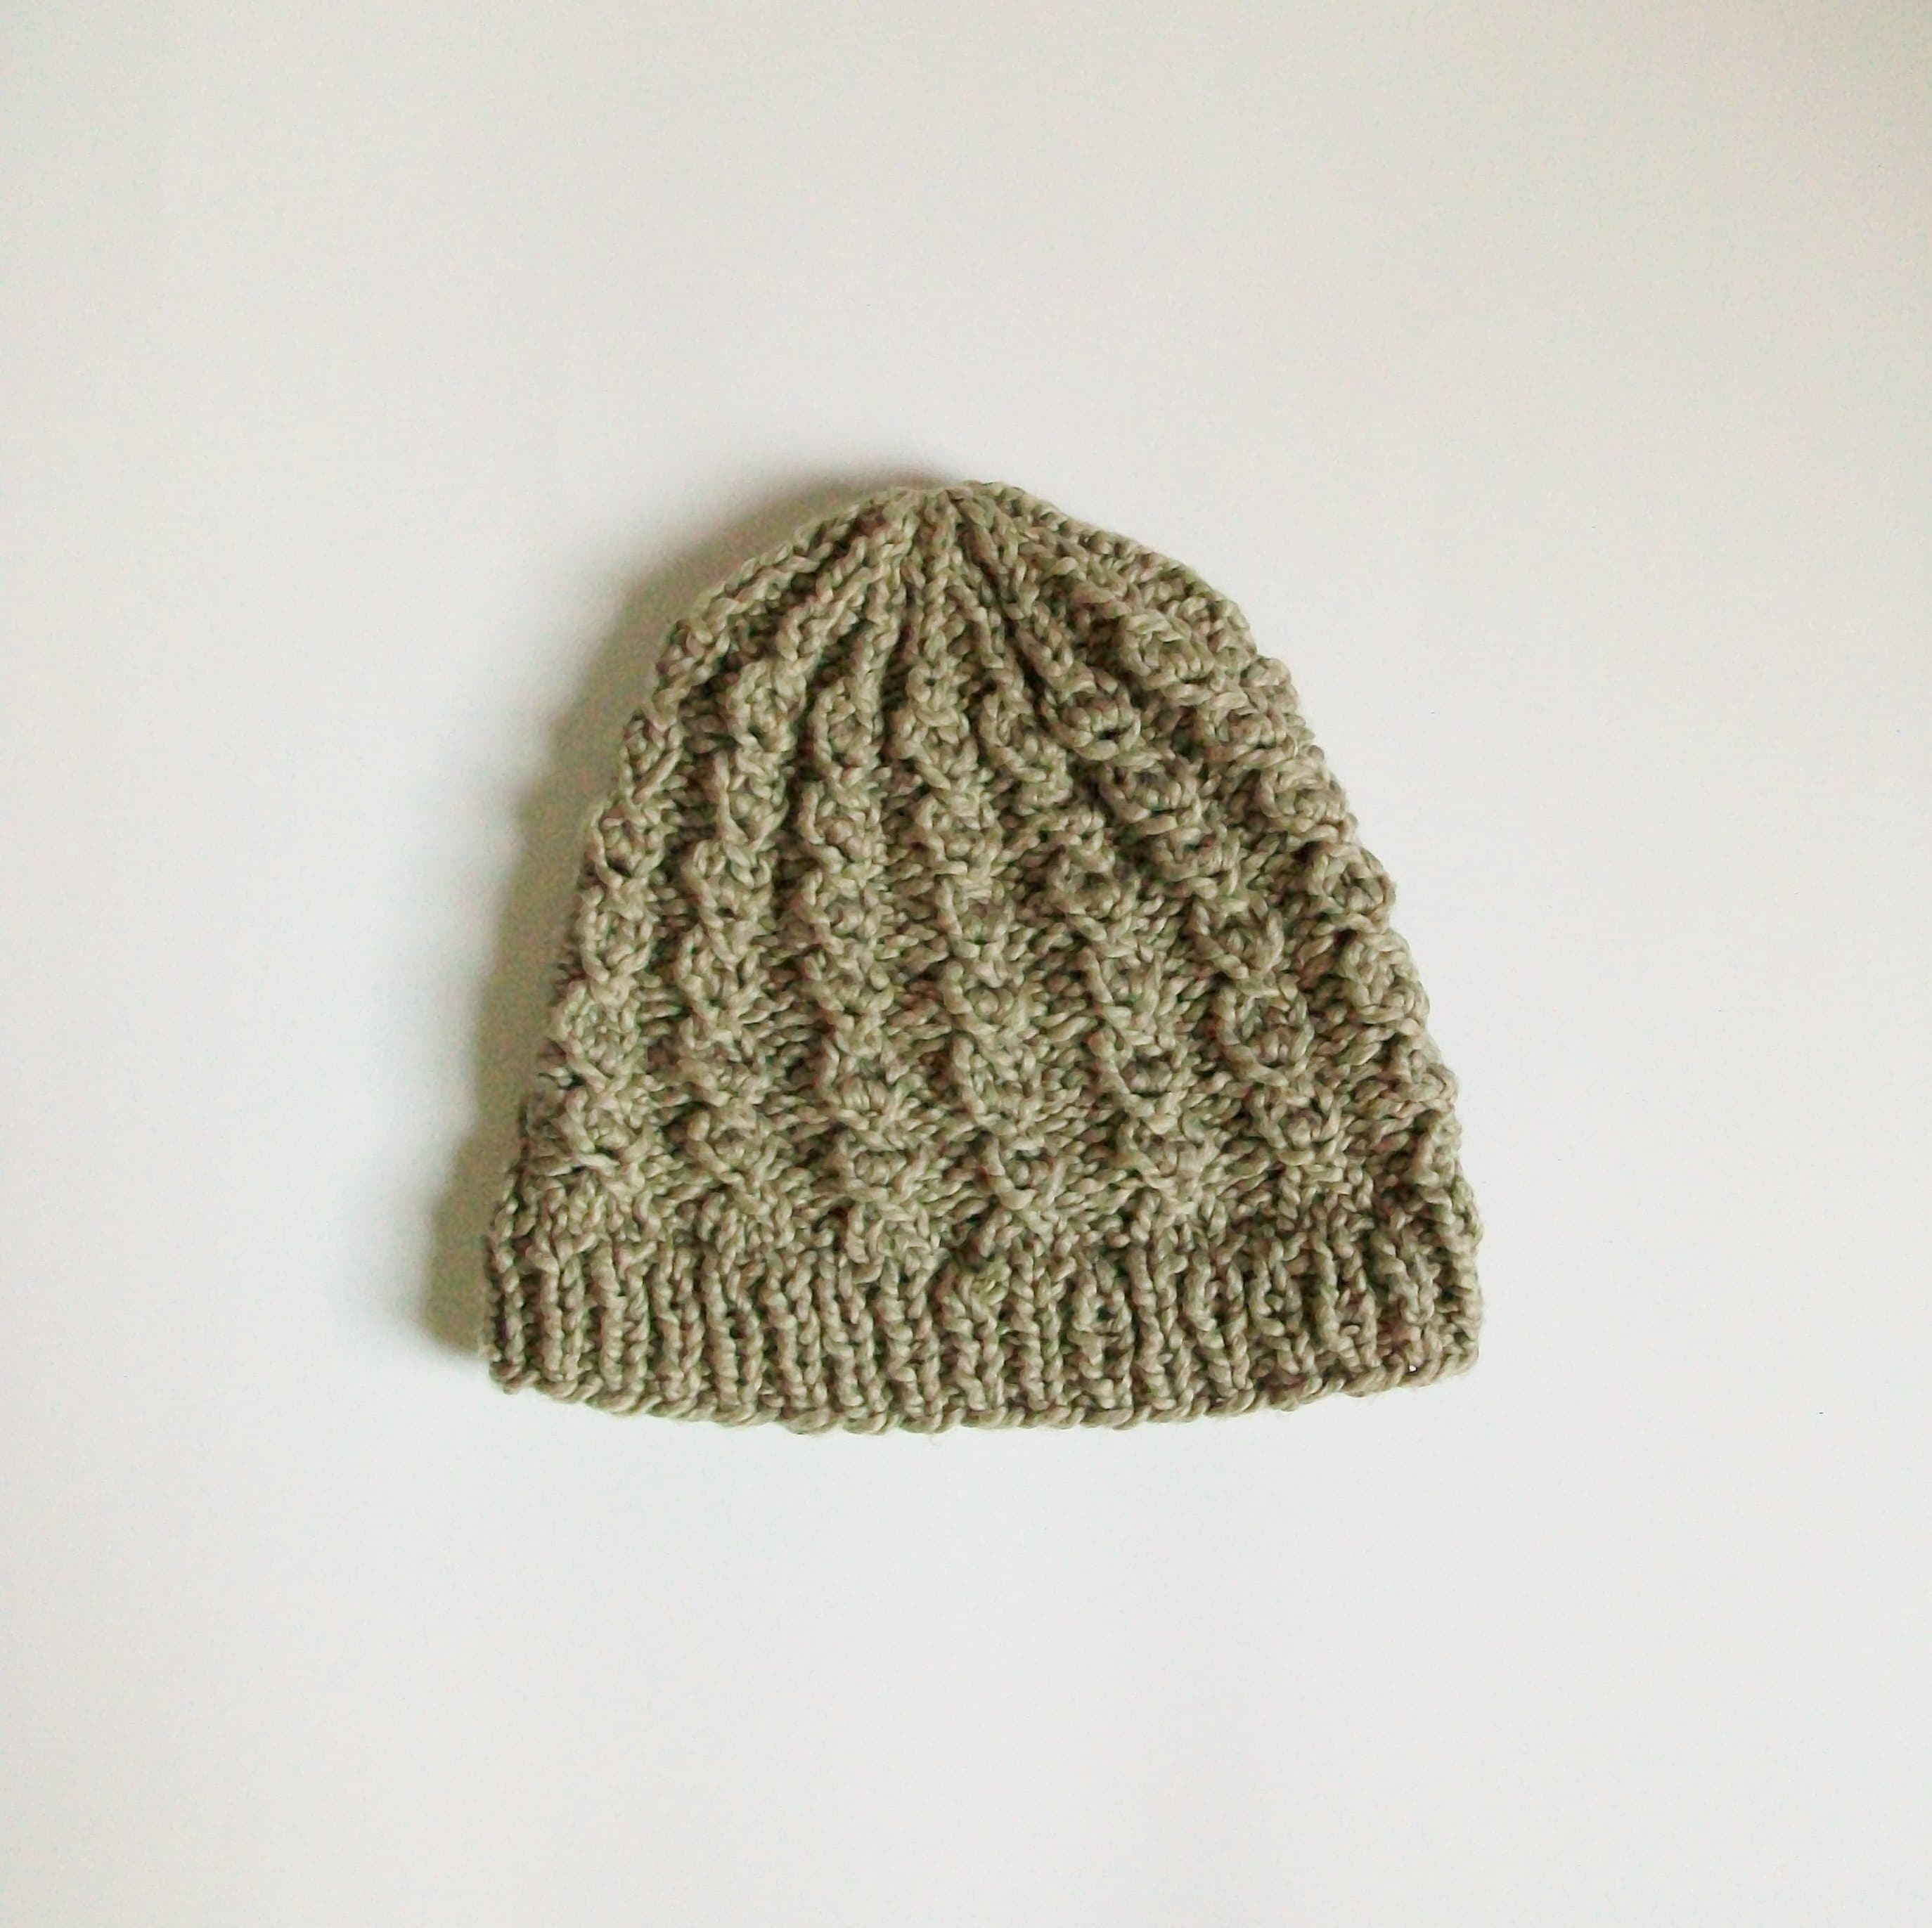 a7c1d40ca Sage Green Cotton Cable Knit Hat Rustic Twist Beanie Organic Adult Size